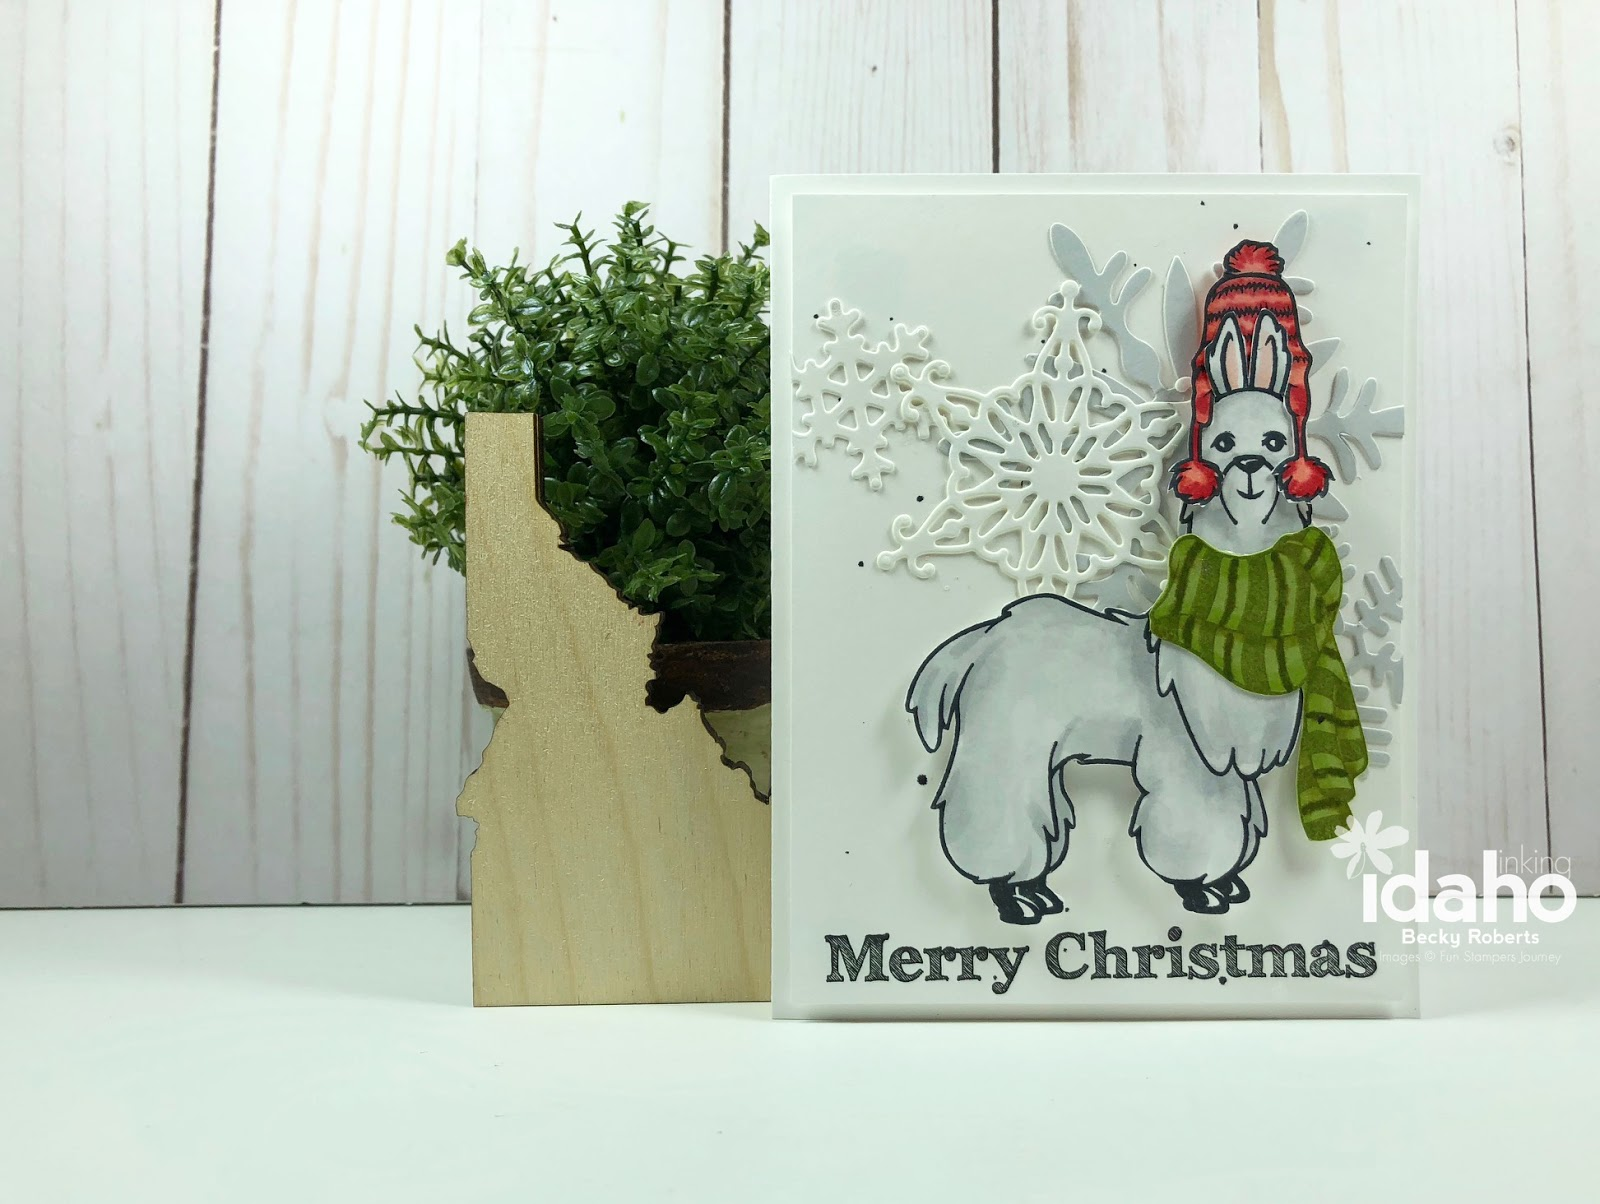 Inking Idaho: No Prob-llama Christmas Card